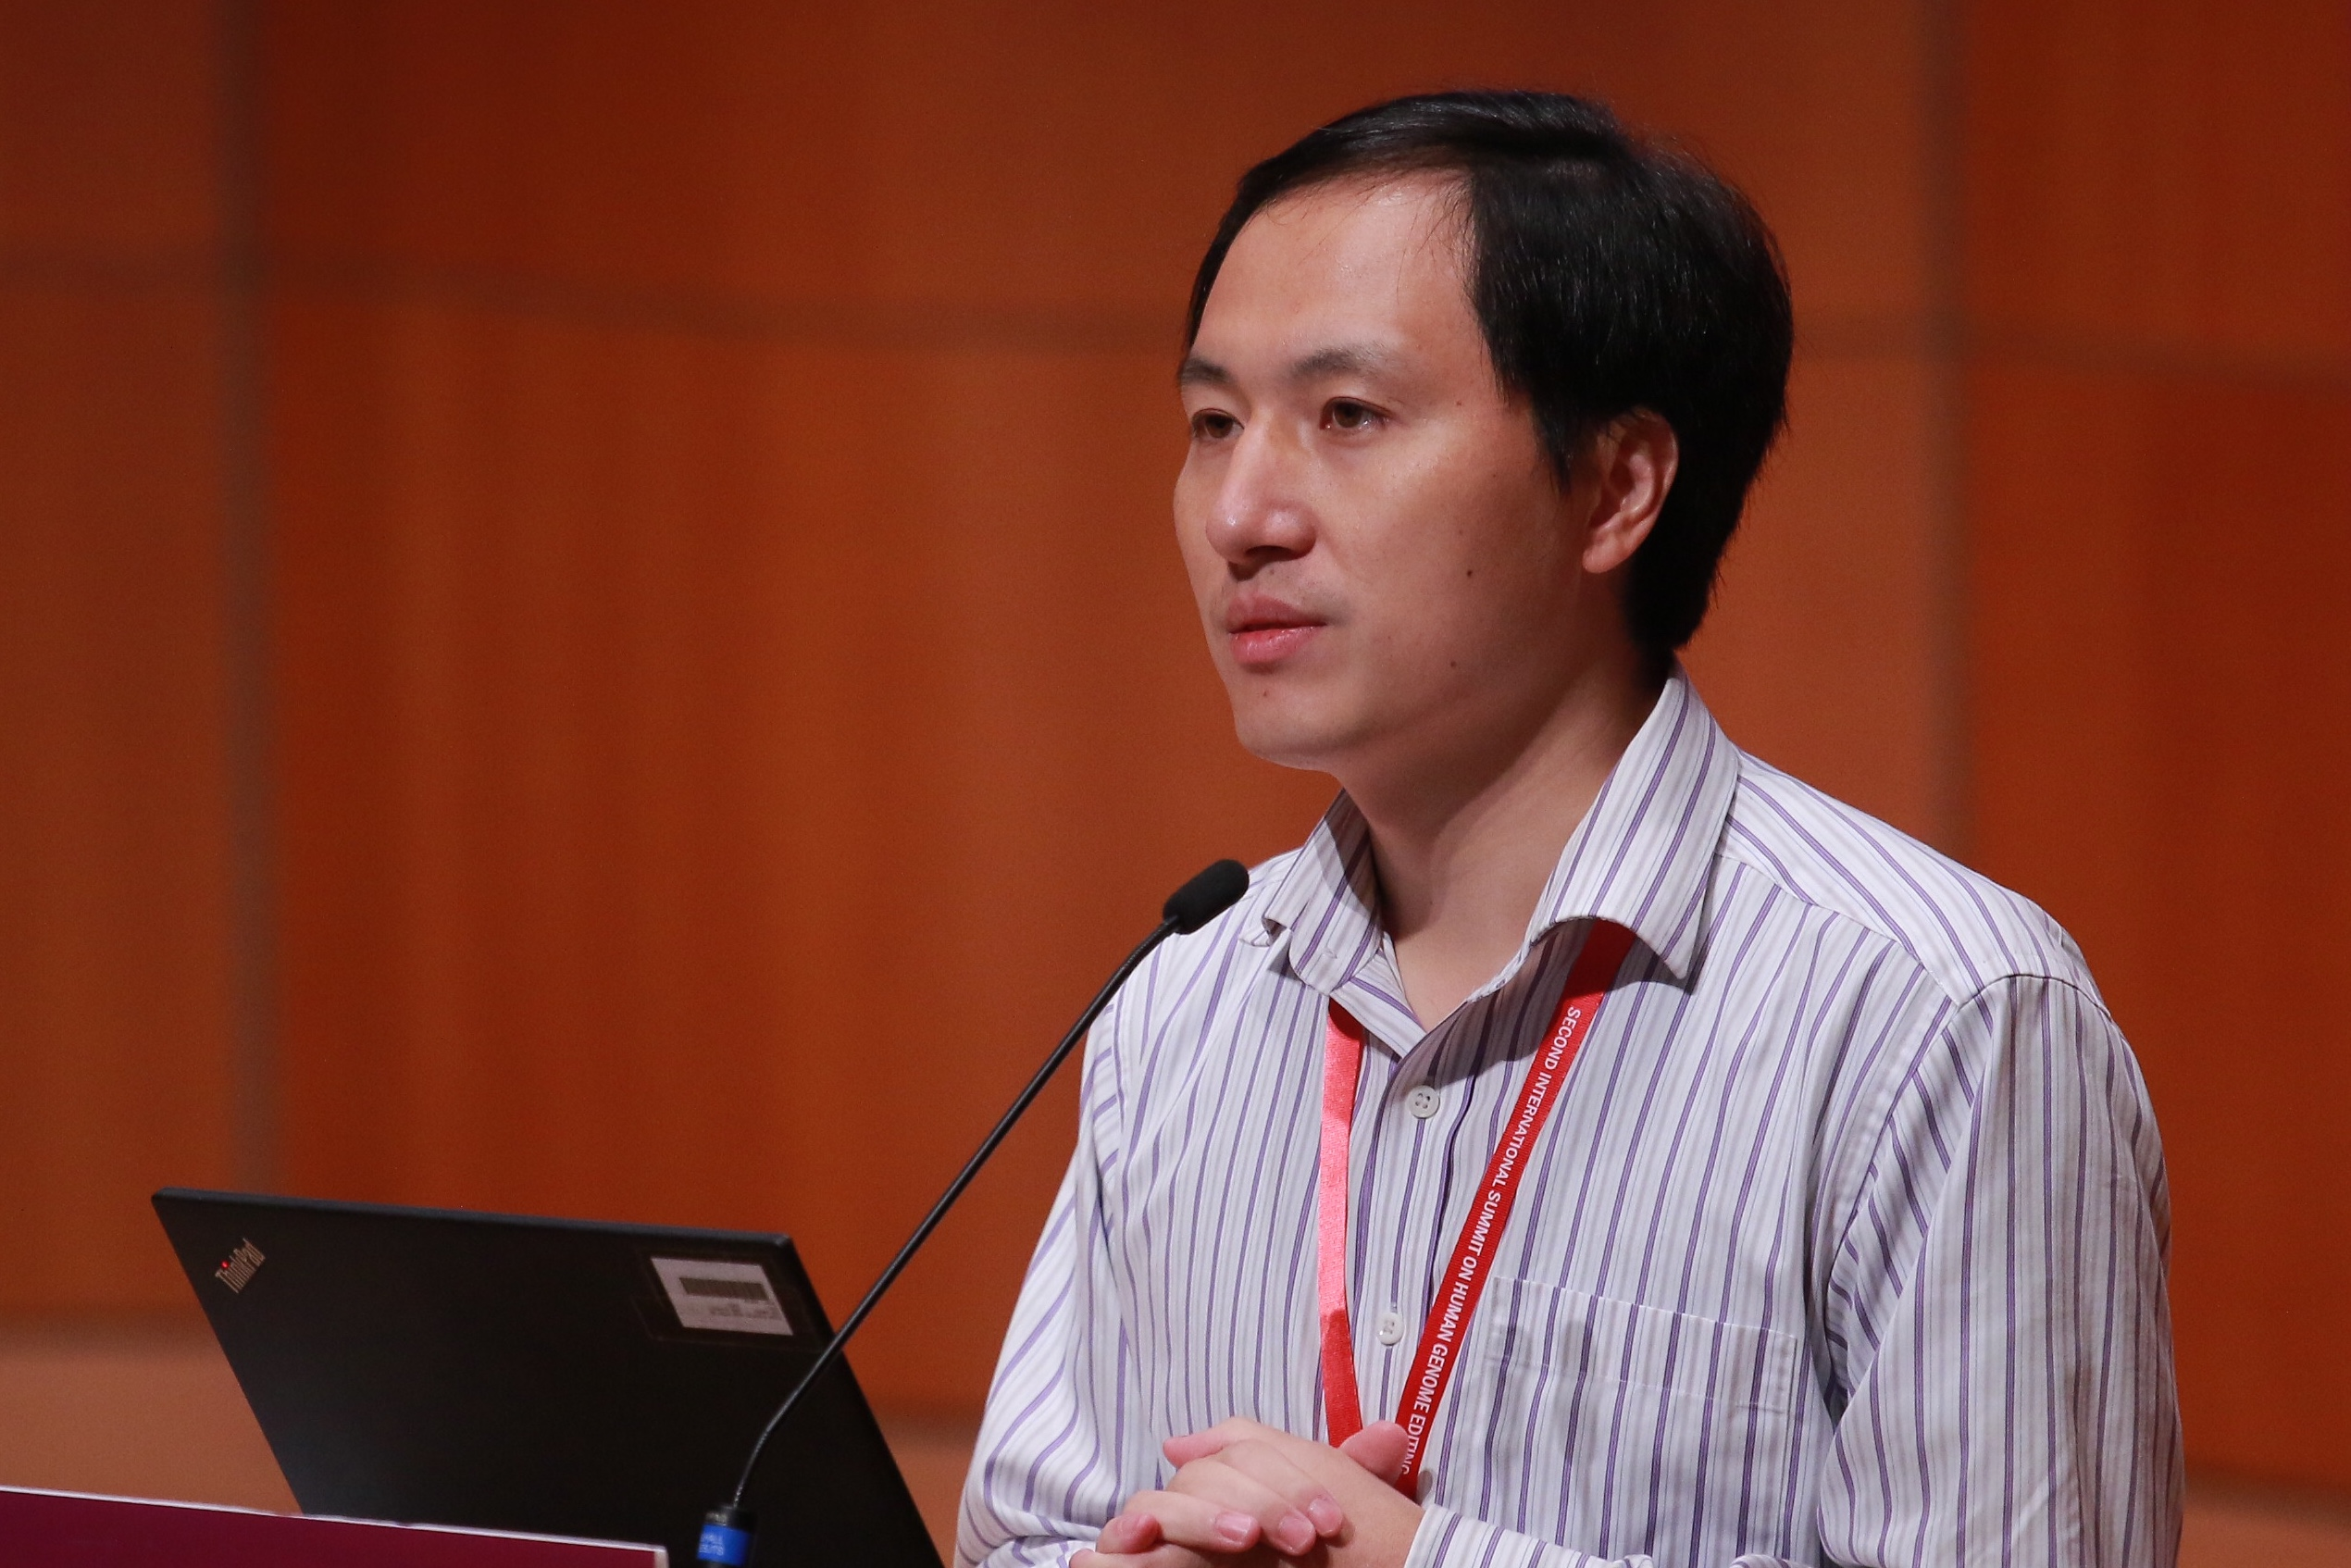 Biological researcher He Jiankui speaks on day two of the Second International Summit on Human Genome Editing at the University of Hong Kong (HKU) on November 28, 2018 in Hong Kong, China.